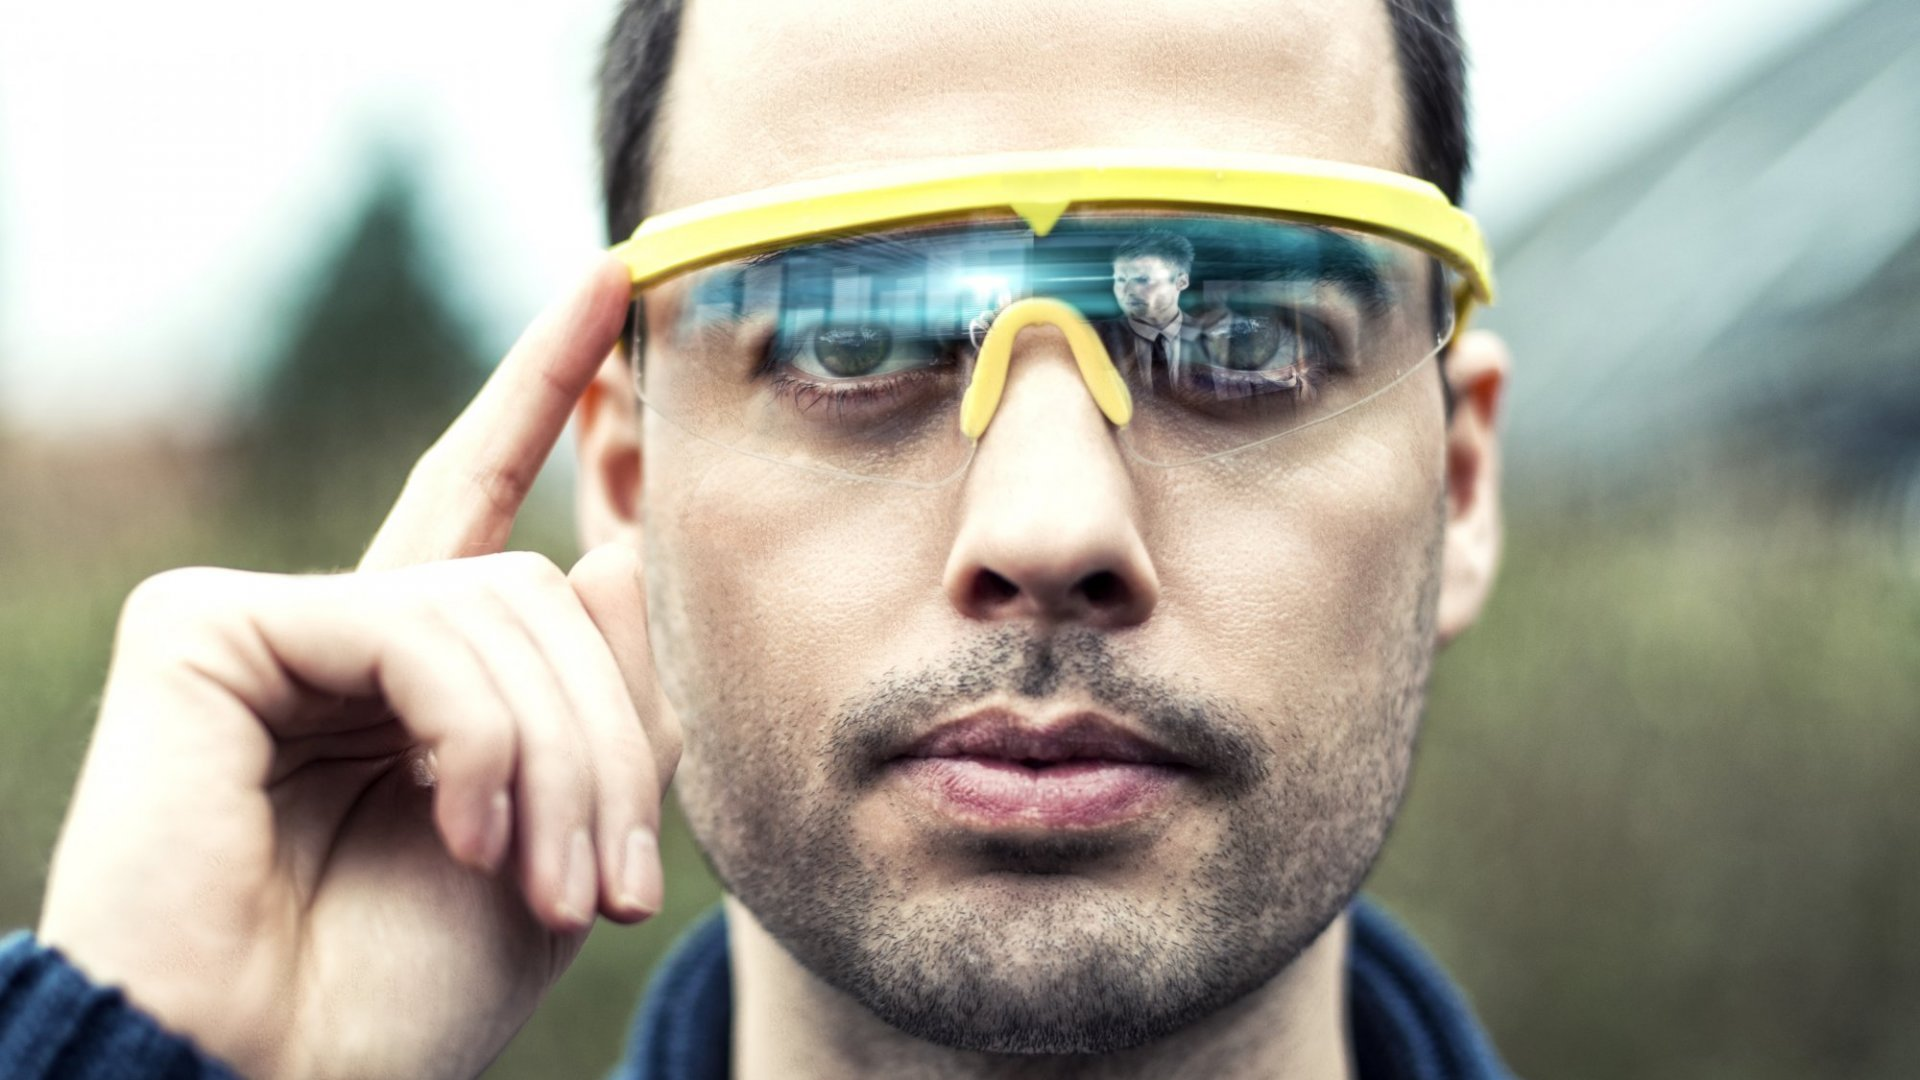 5 Wearable Gadgets You've Never Heard Of That Will Improve Your Life